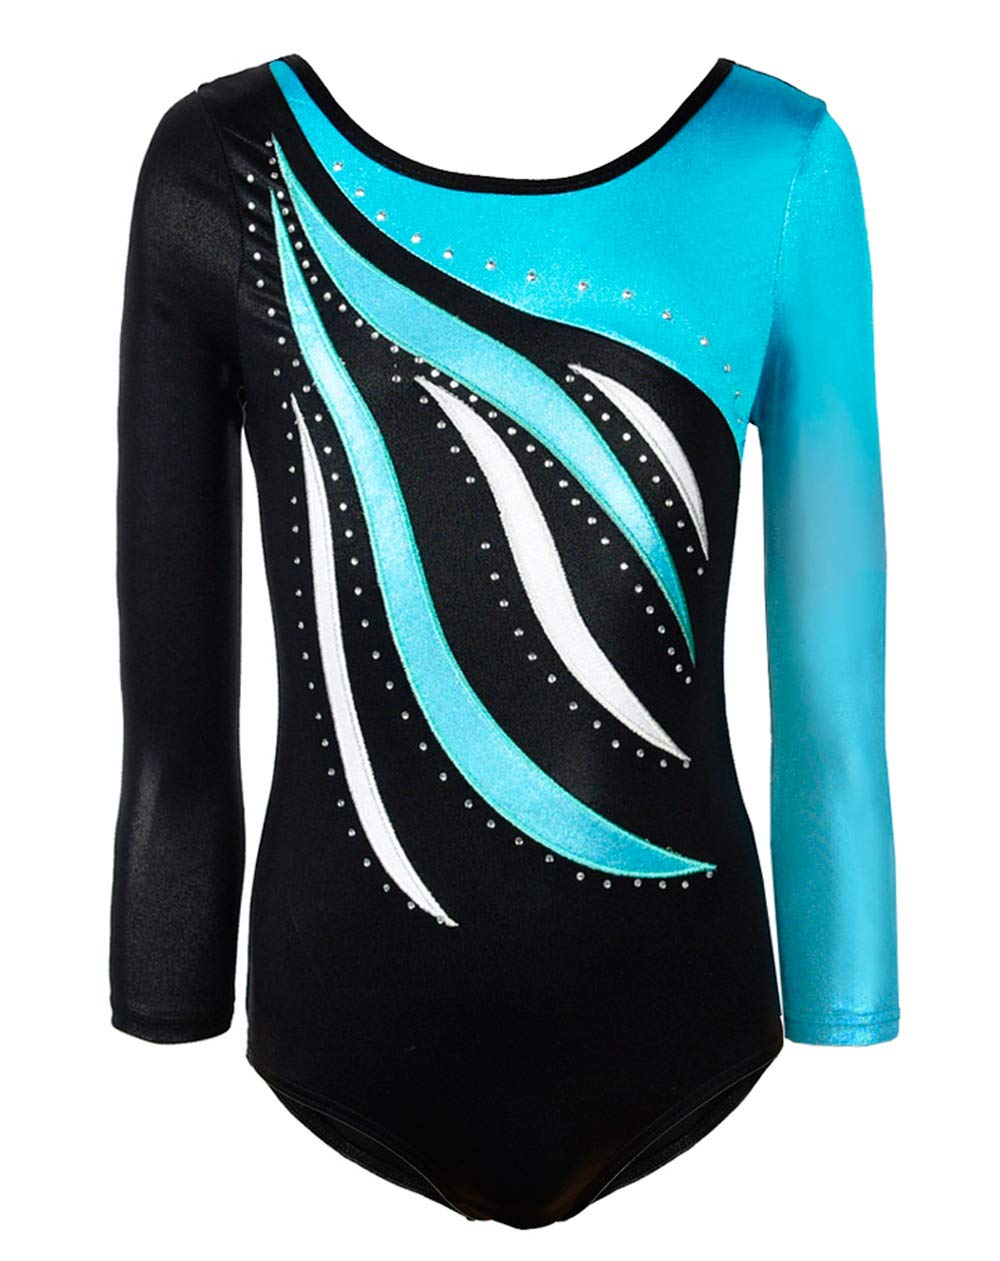 Girls Universal long sleeved leotard ALL SIZES dance gymnastics MADE IN THE UK